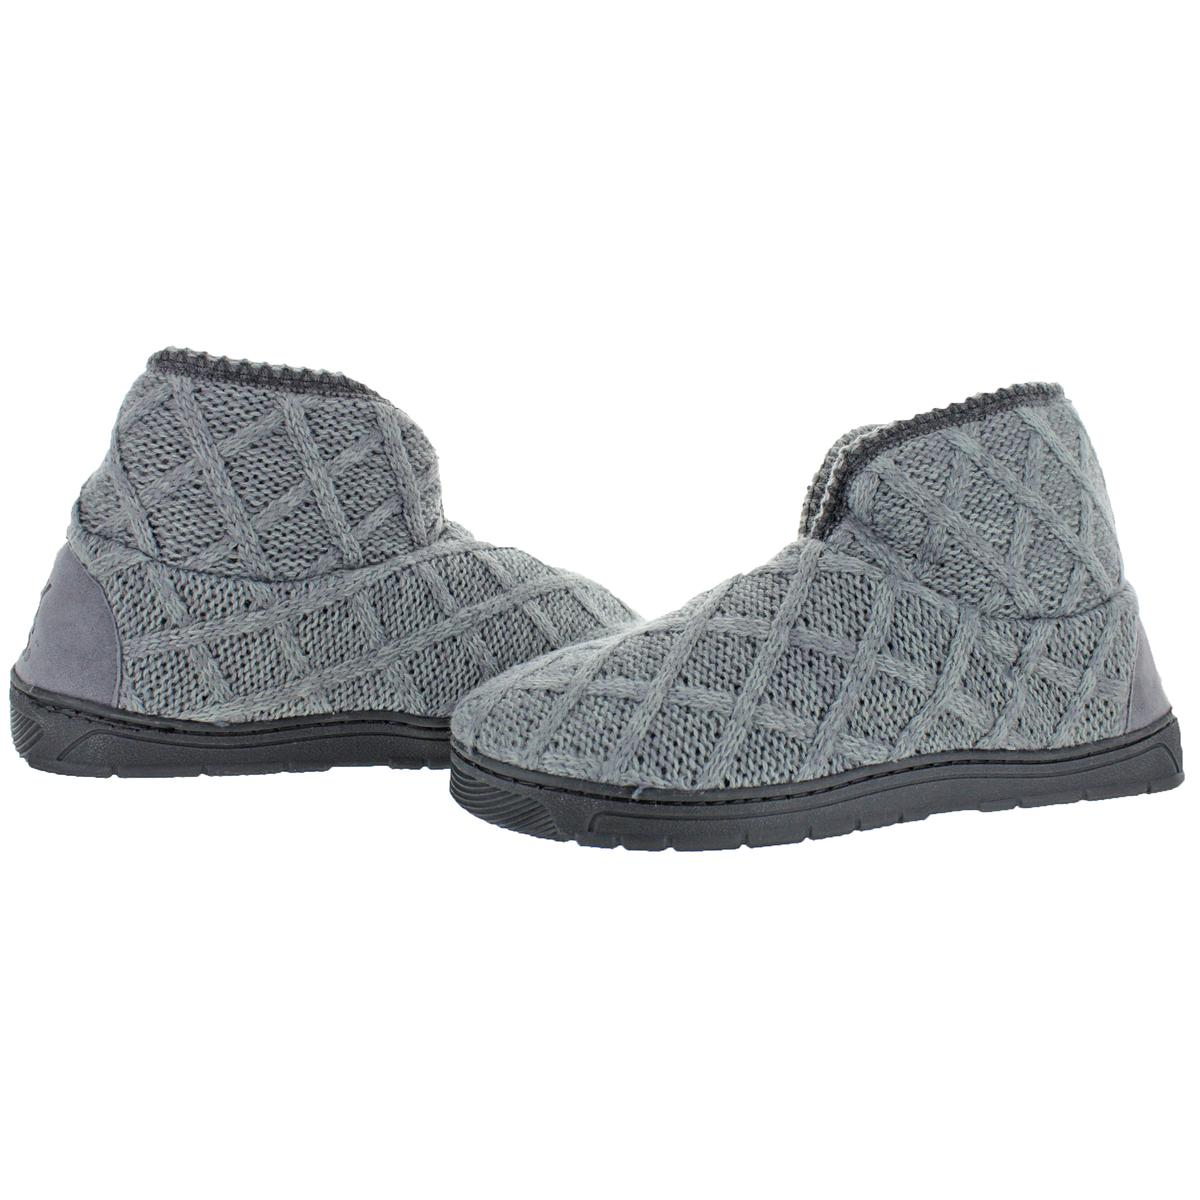 Mukluks-Men-039-s-Mark-Sweater-Knit-Furpa-Ankle-Bootie-House-Slippers thumbnail 23